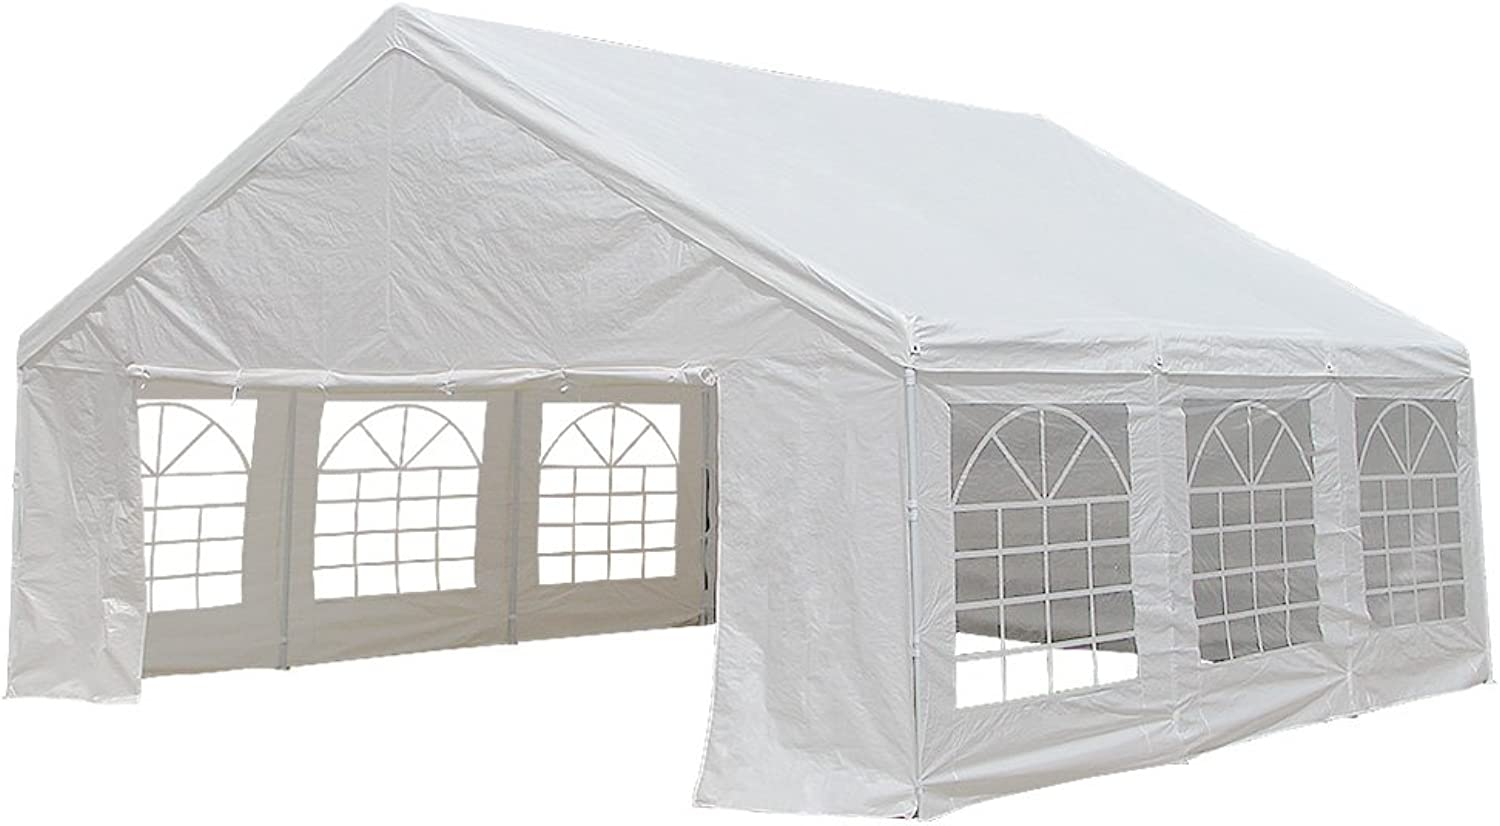 Wallaroo 6x6 White Gazebo Party Wedding Tent Event Marquee Outdoor Canopy Shade